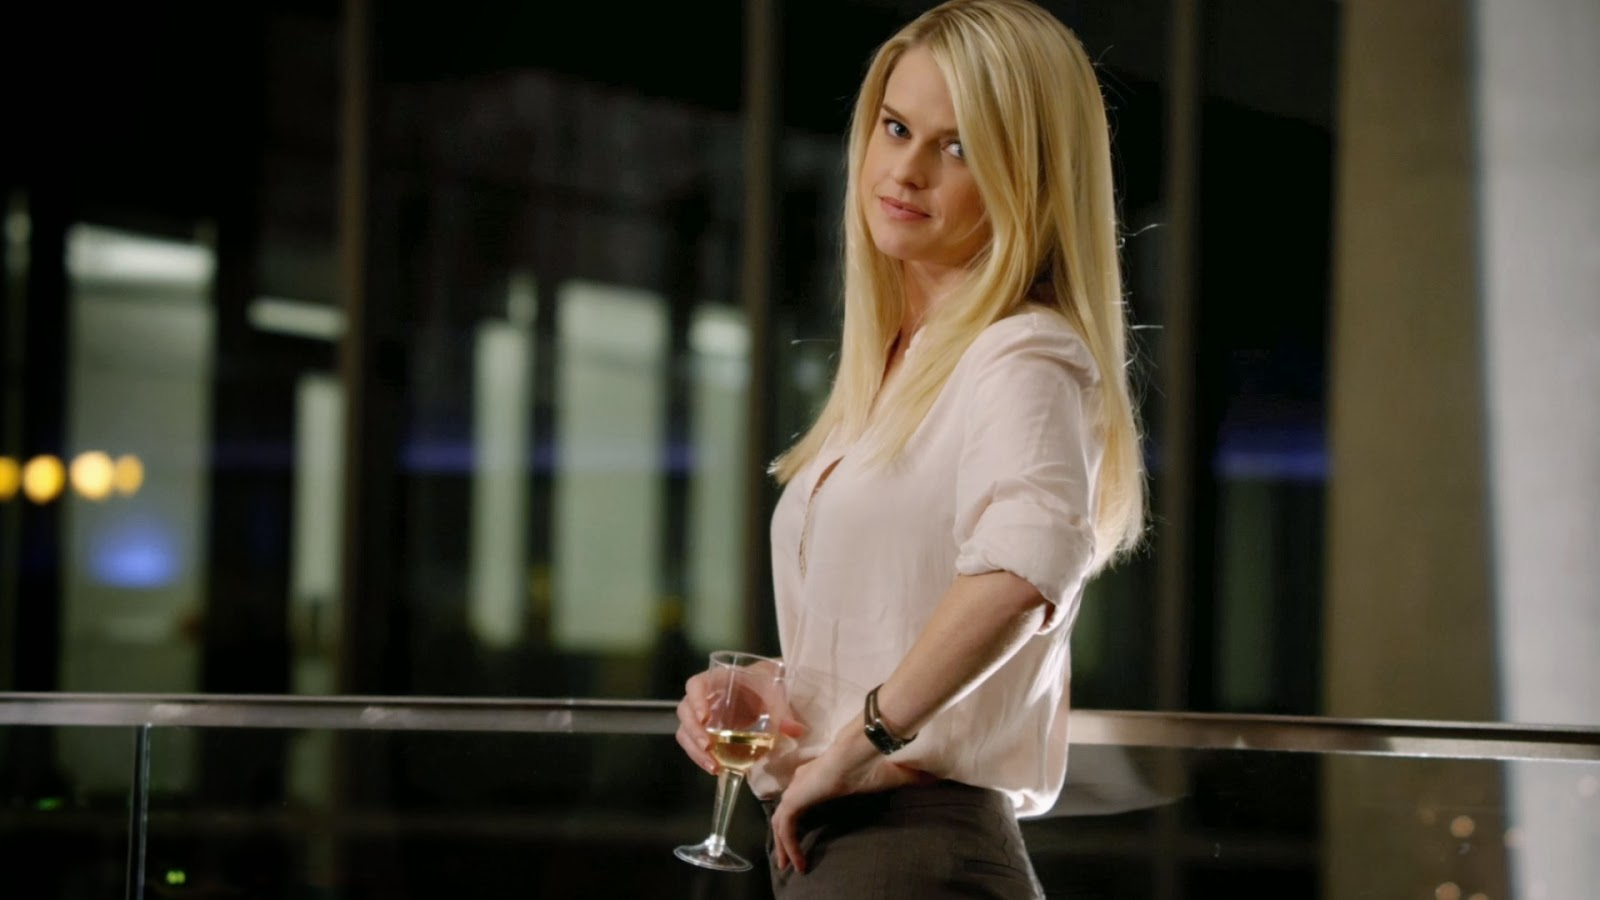 TOP STARS HD WALLPAPER FREE DOWNLOAD: Alice Eve Top Star ...